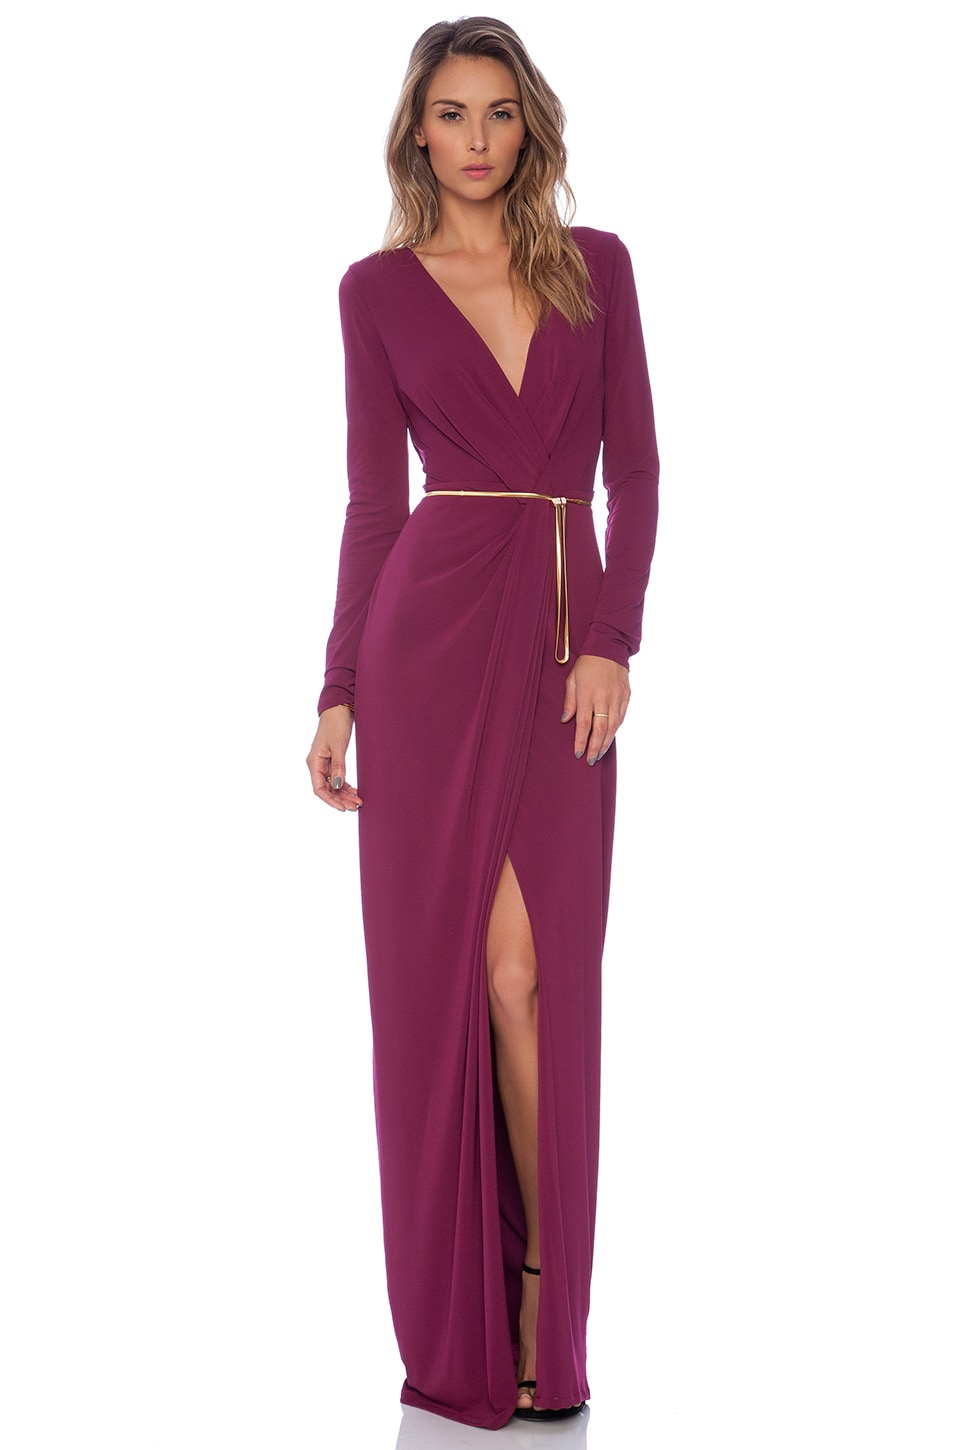 Halston Heritage Long Sleeve Cross Over V Neck Gown in Boysenberry